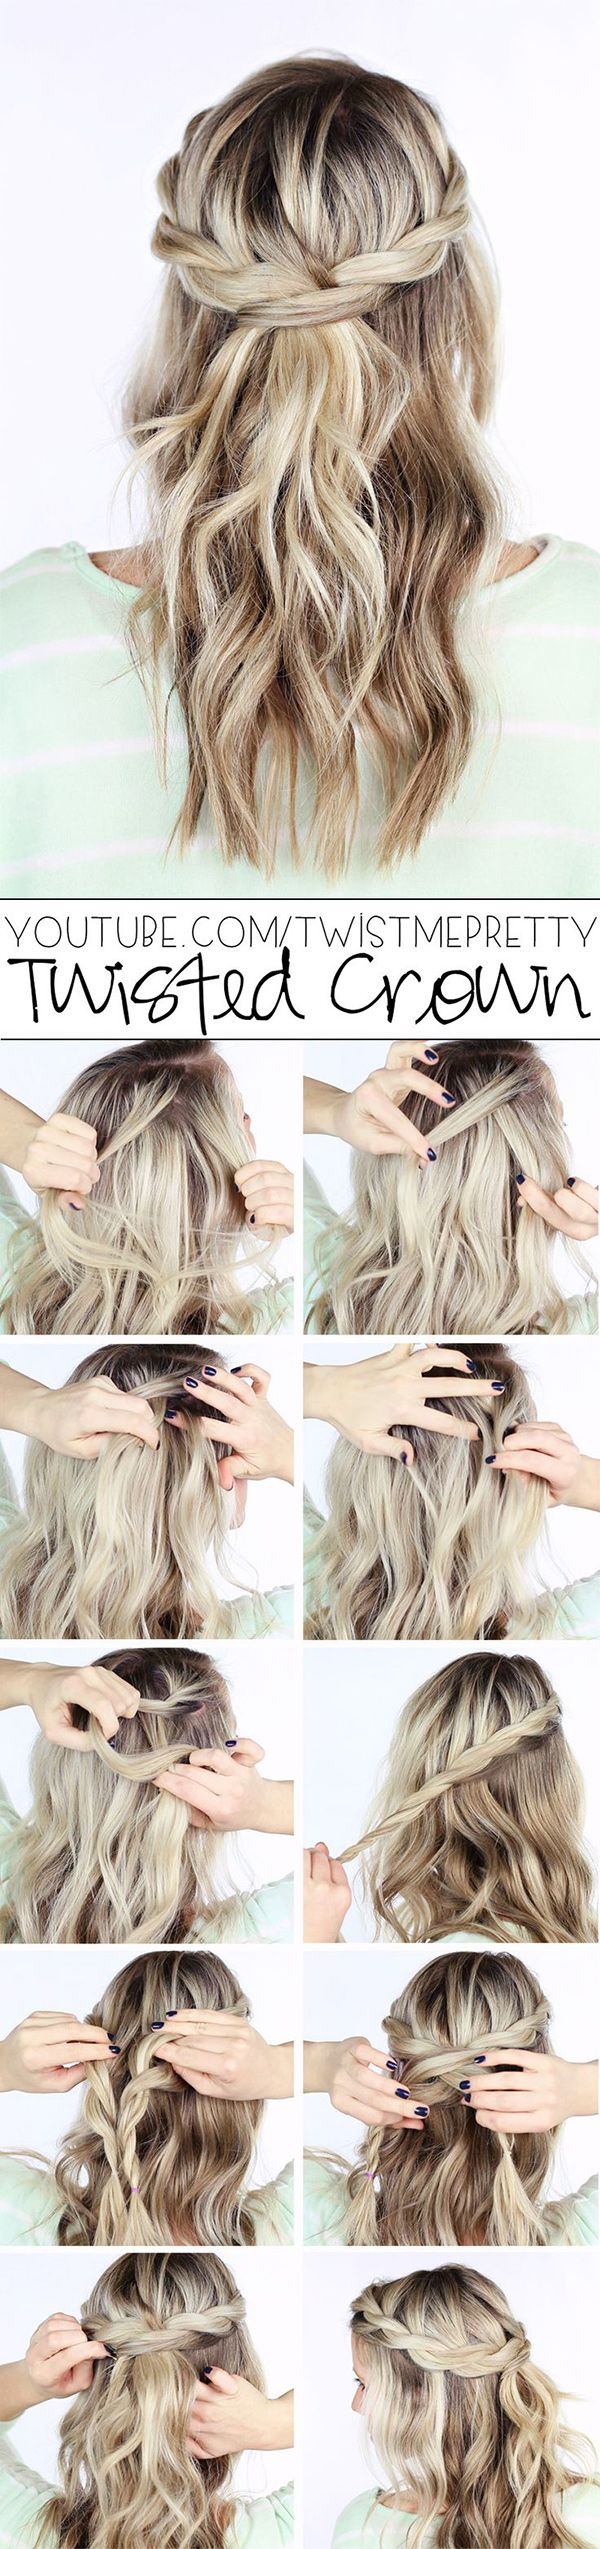 94 best Hair images on Pinterest | Hairstyle ideas, Tuto coiffure ...